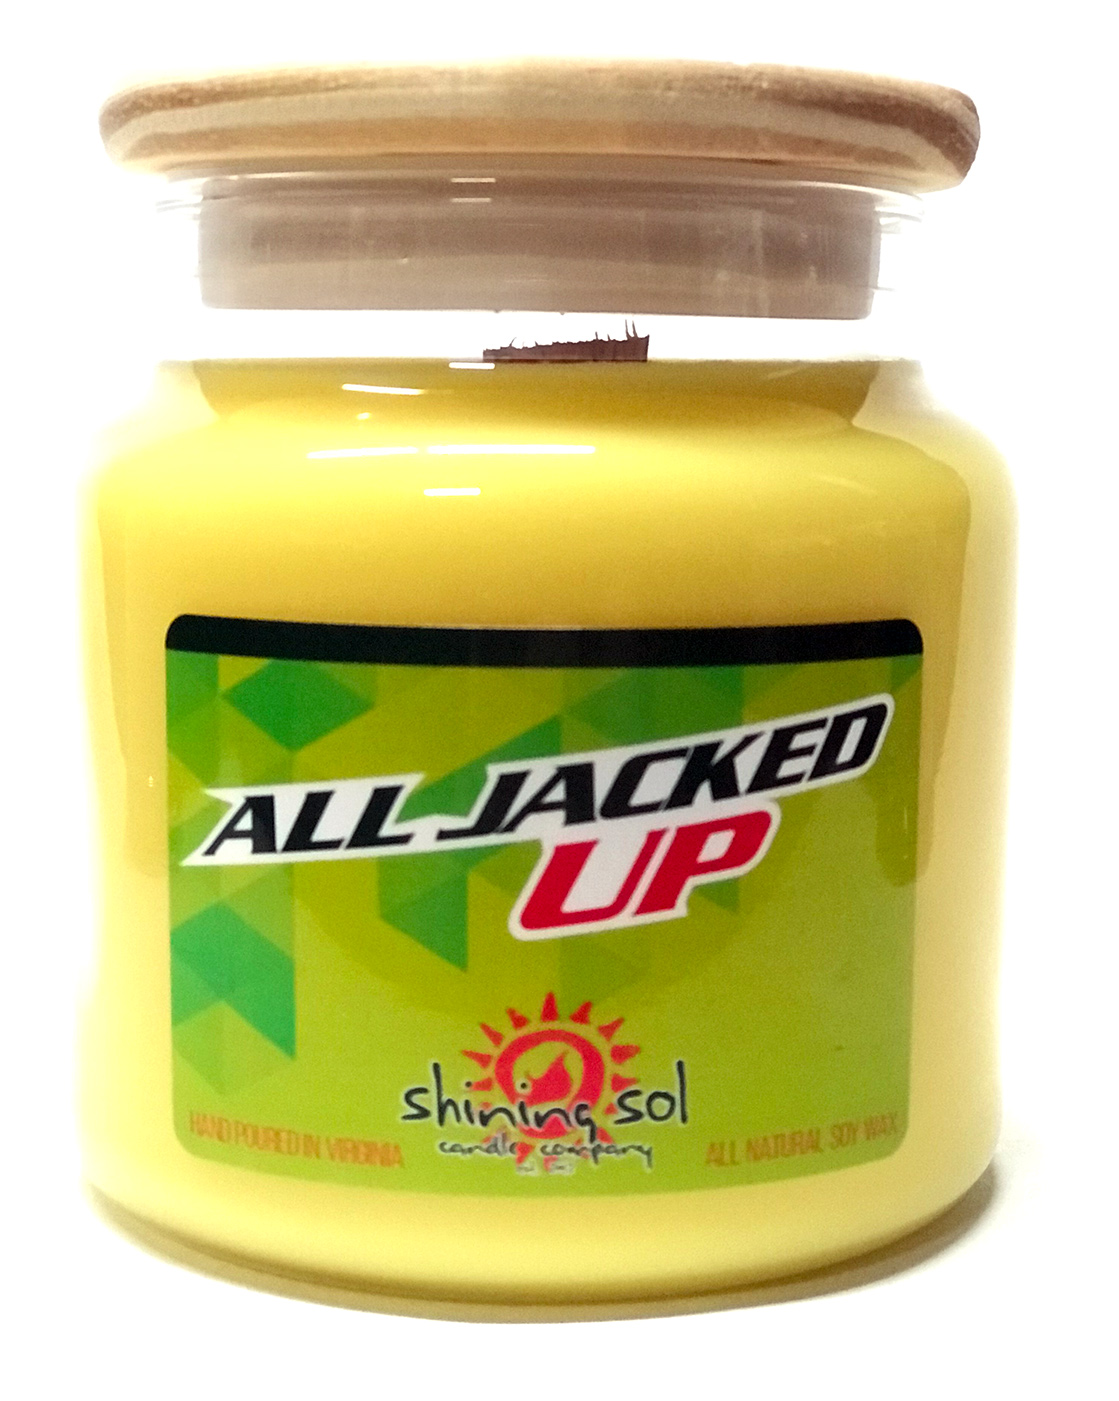 All Jacked Up - Large Jar Candle